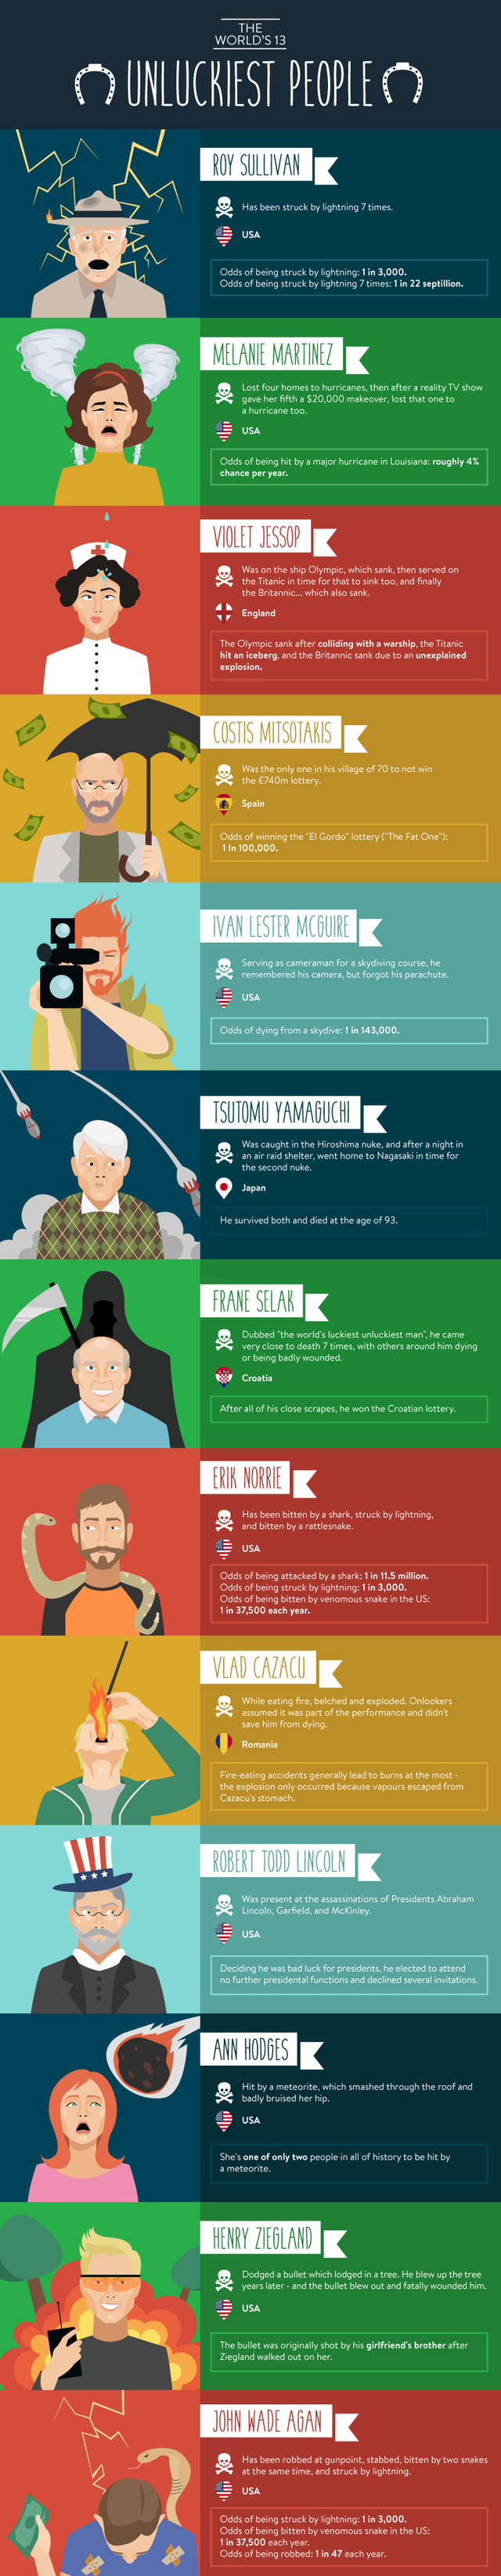 infographic unlucky people